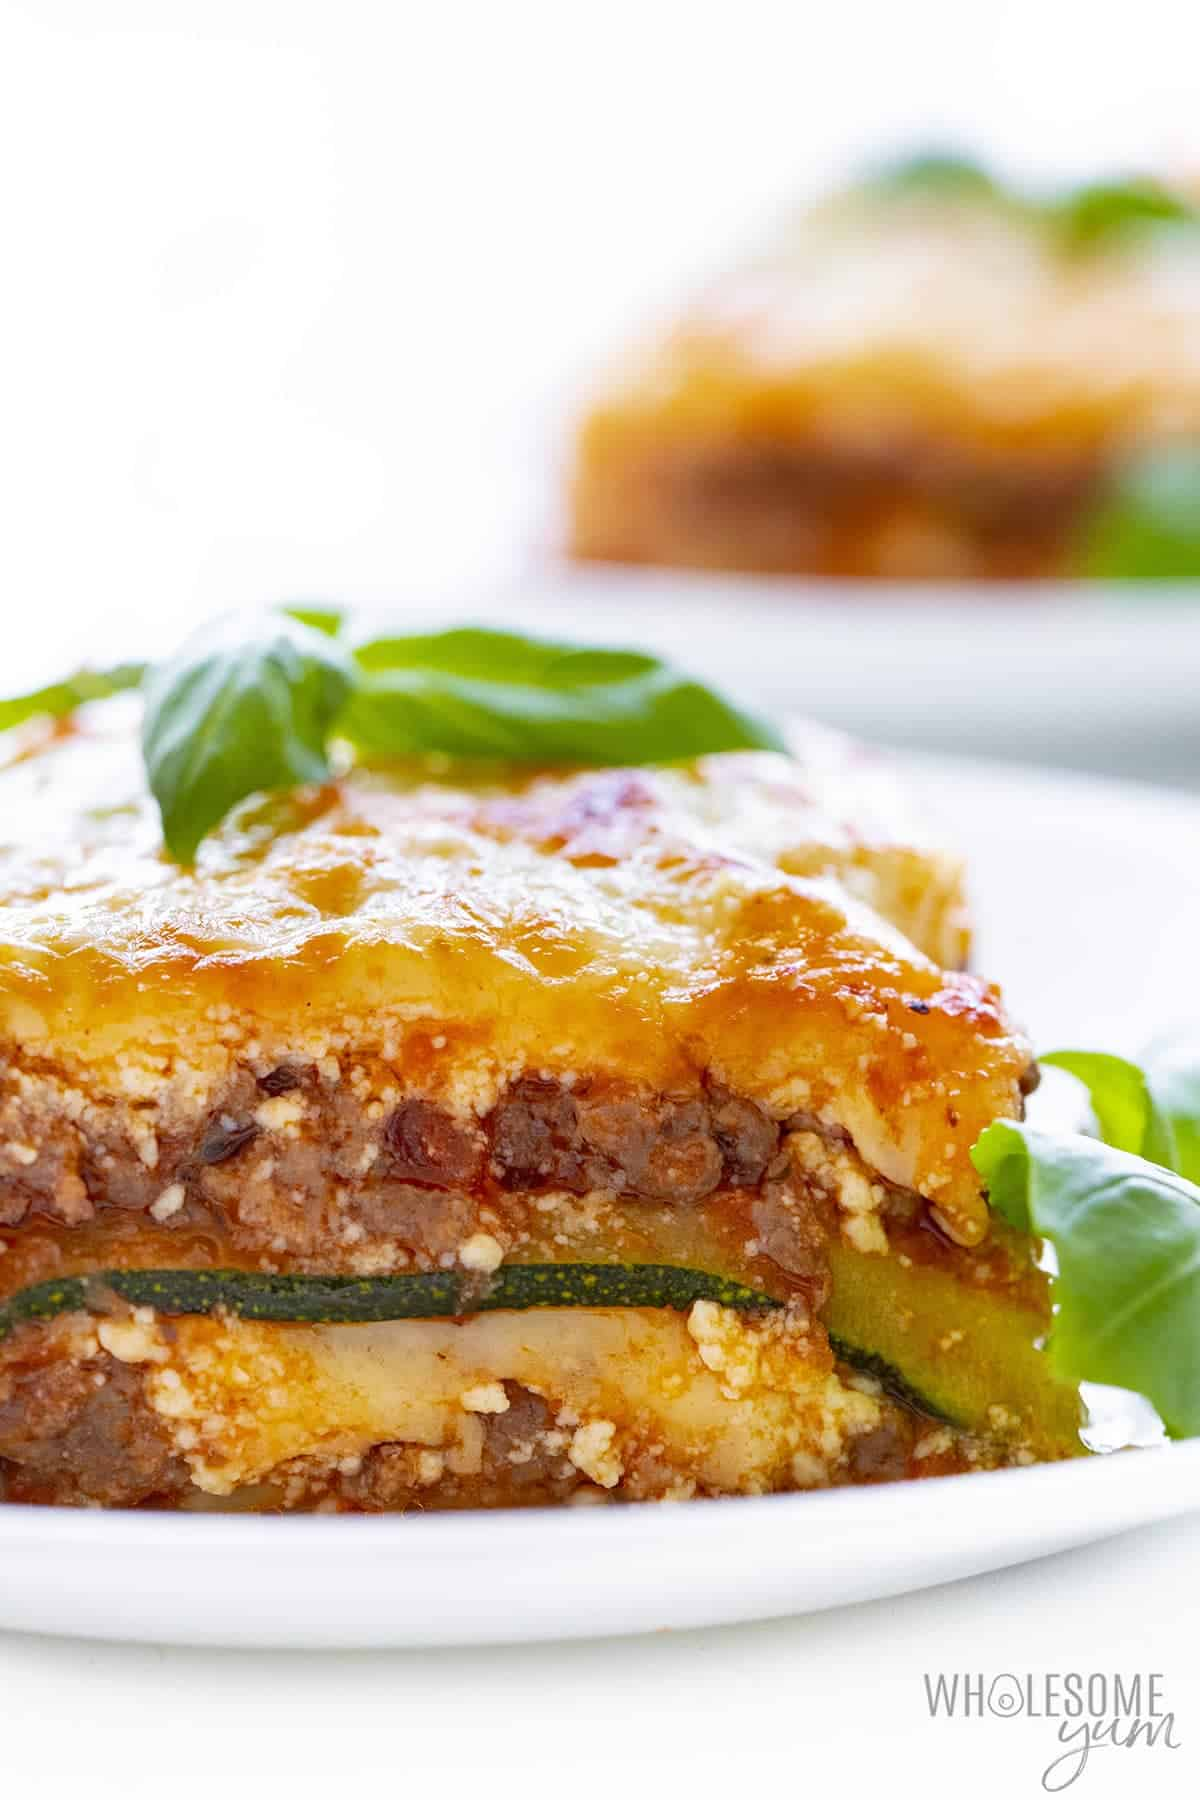 Close up showing layers of lasagna with zucchini noodles